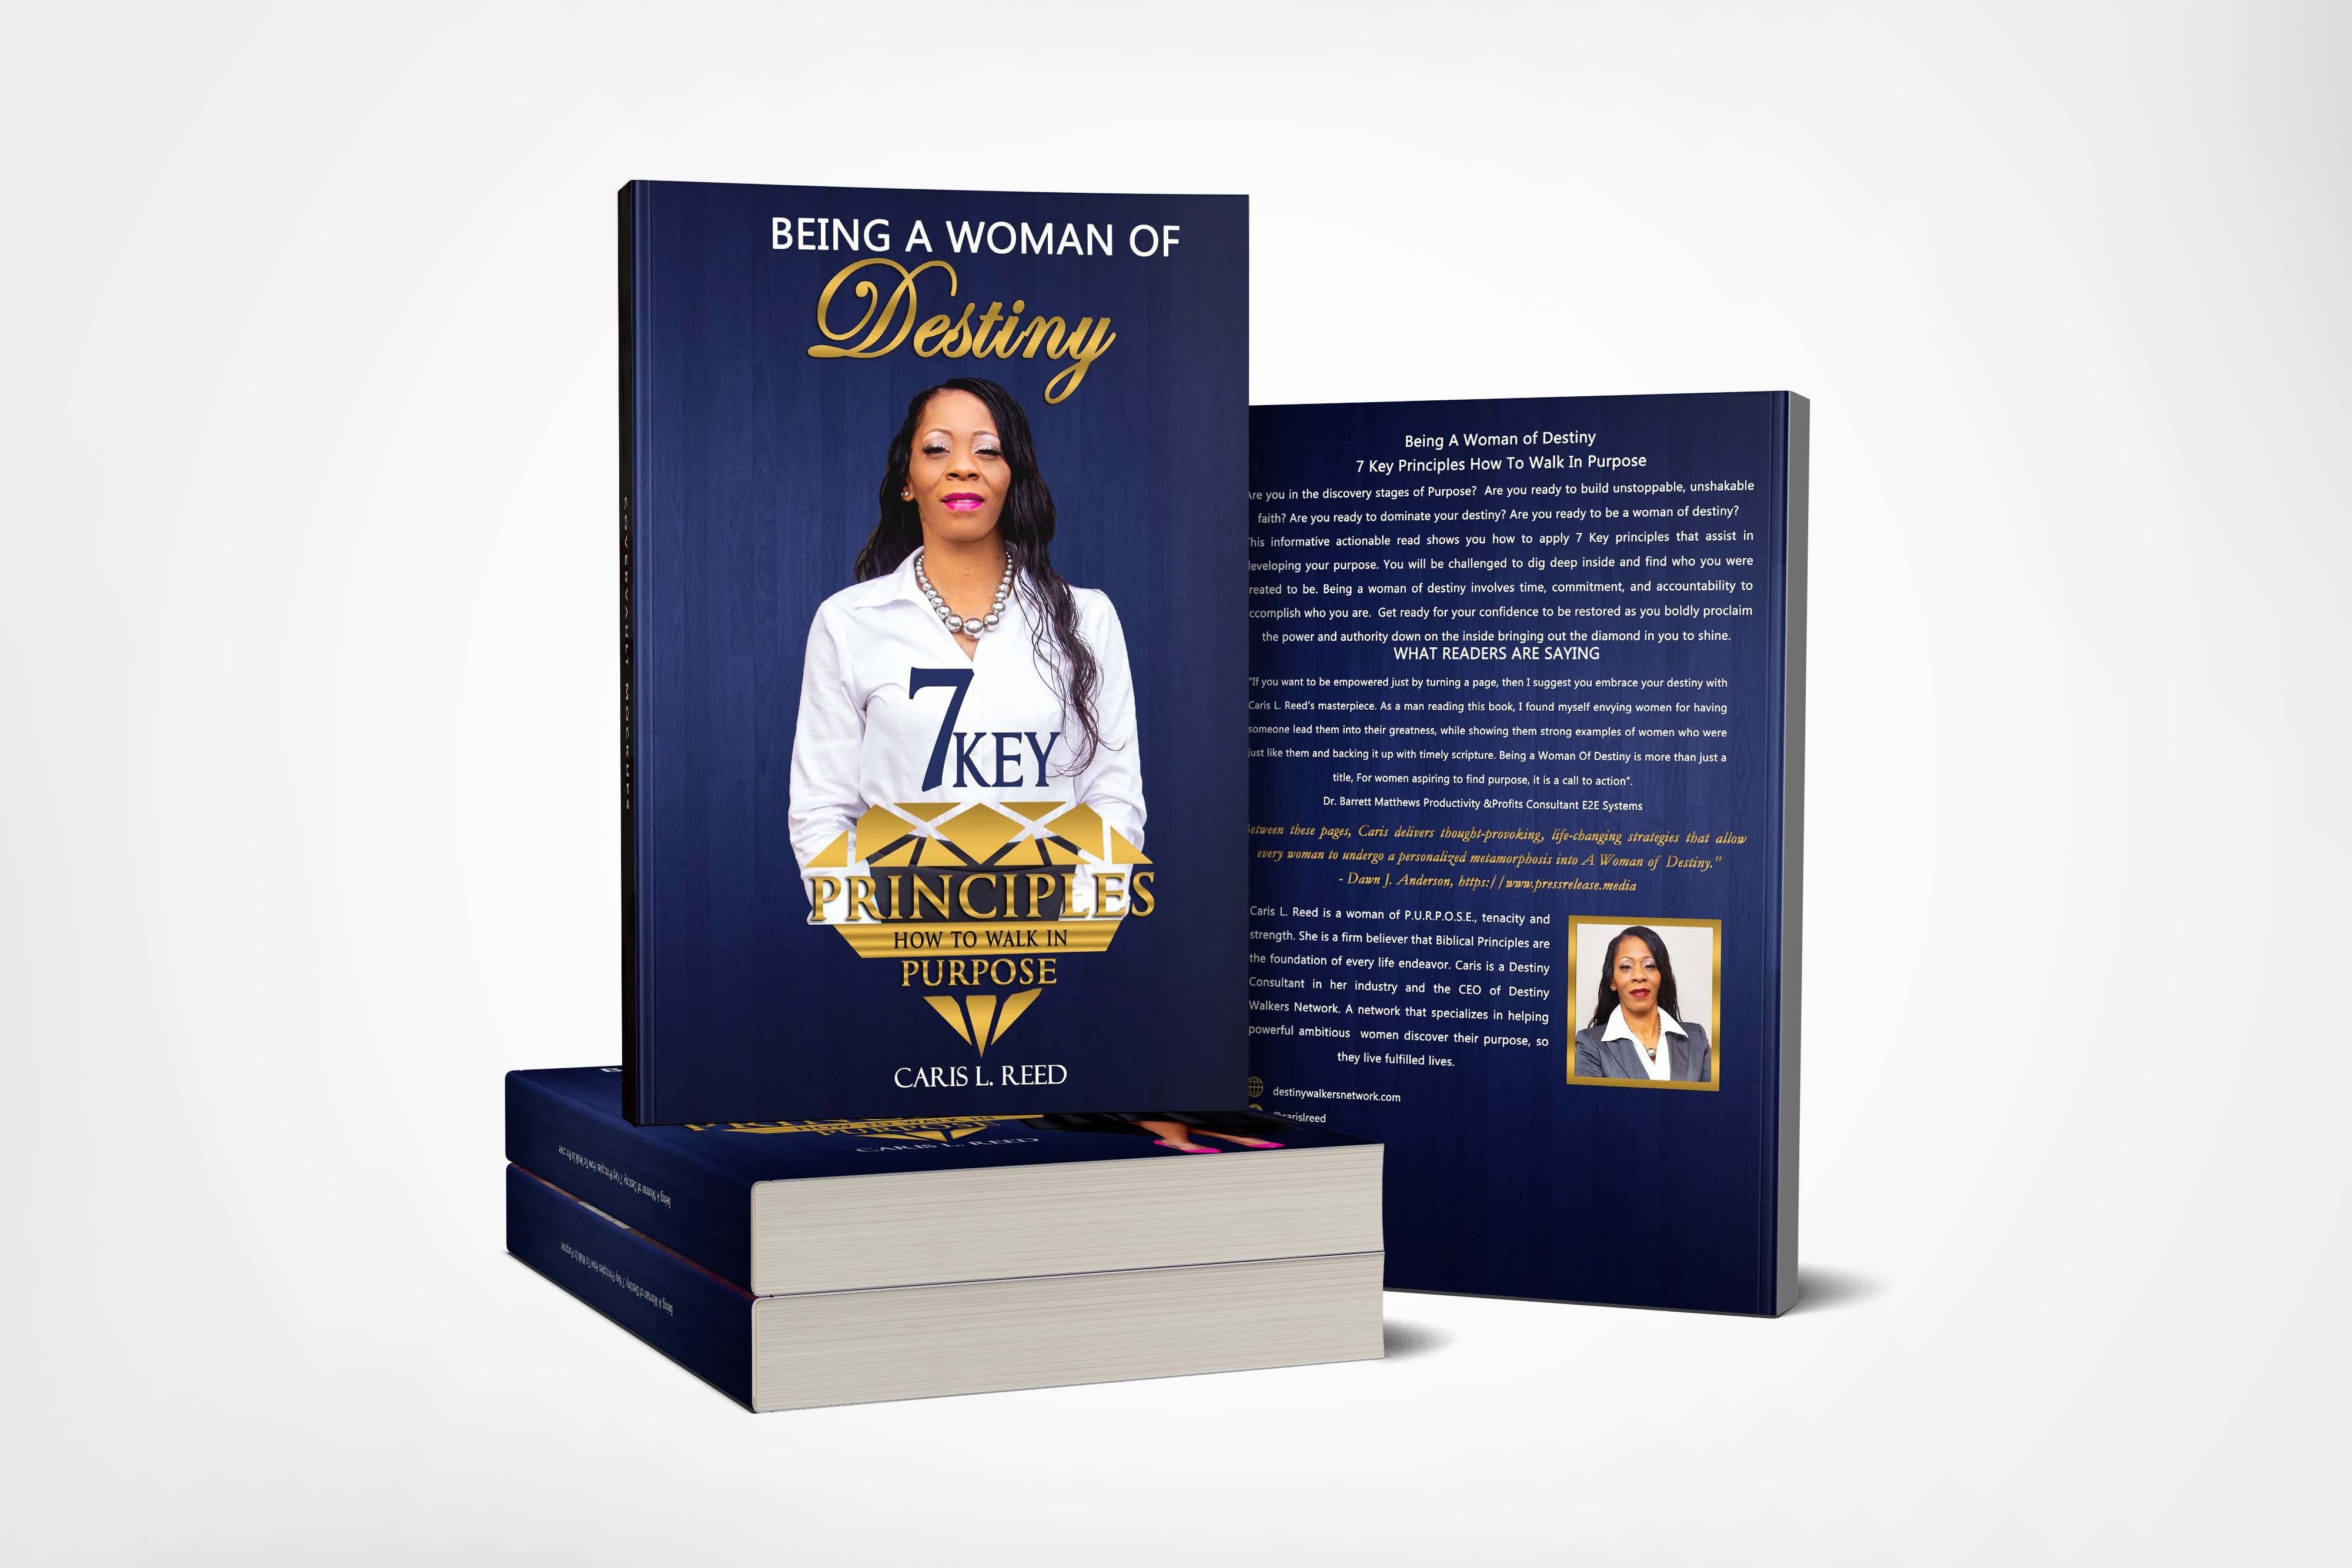 Destiny Walkers Network Launches New Book Being A Woman of Destiny: 7 Key Principles How To Walk In Purpose